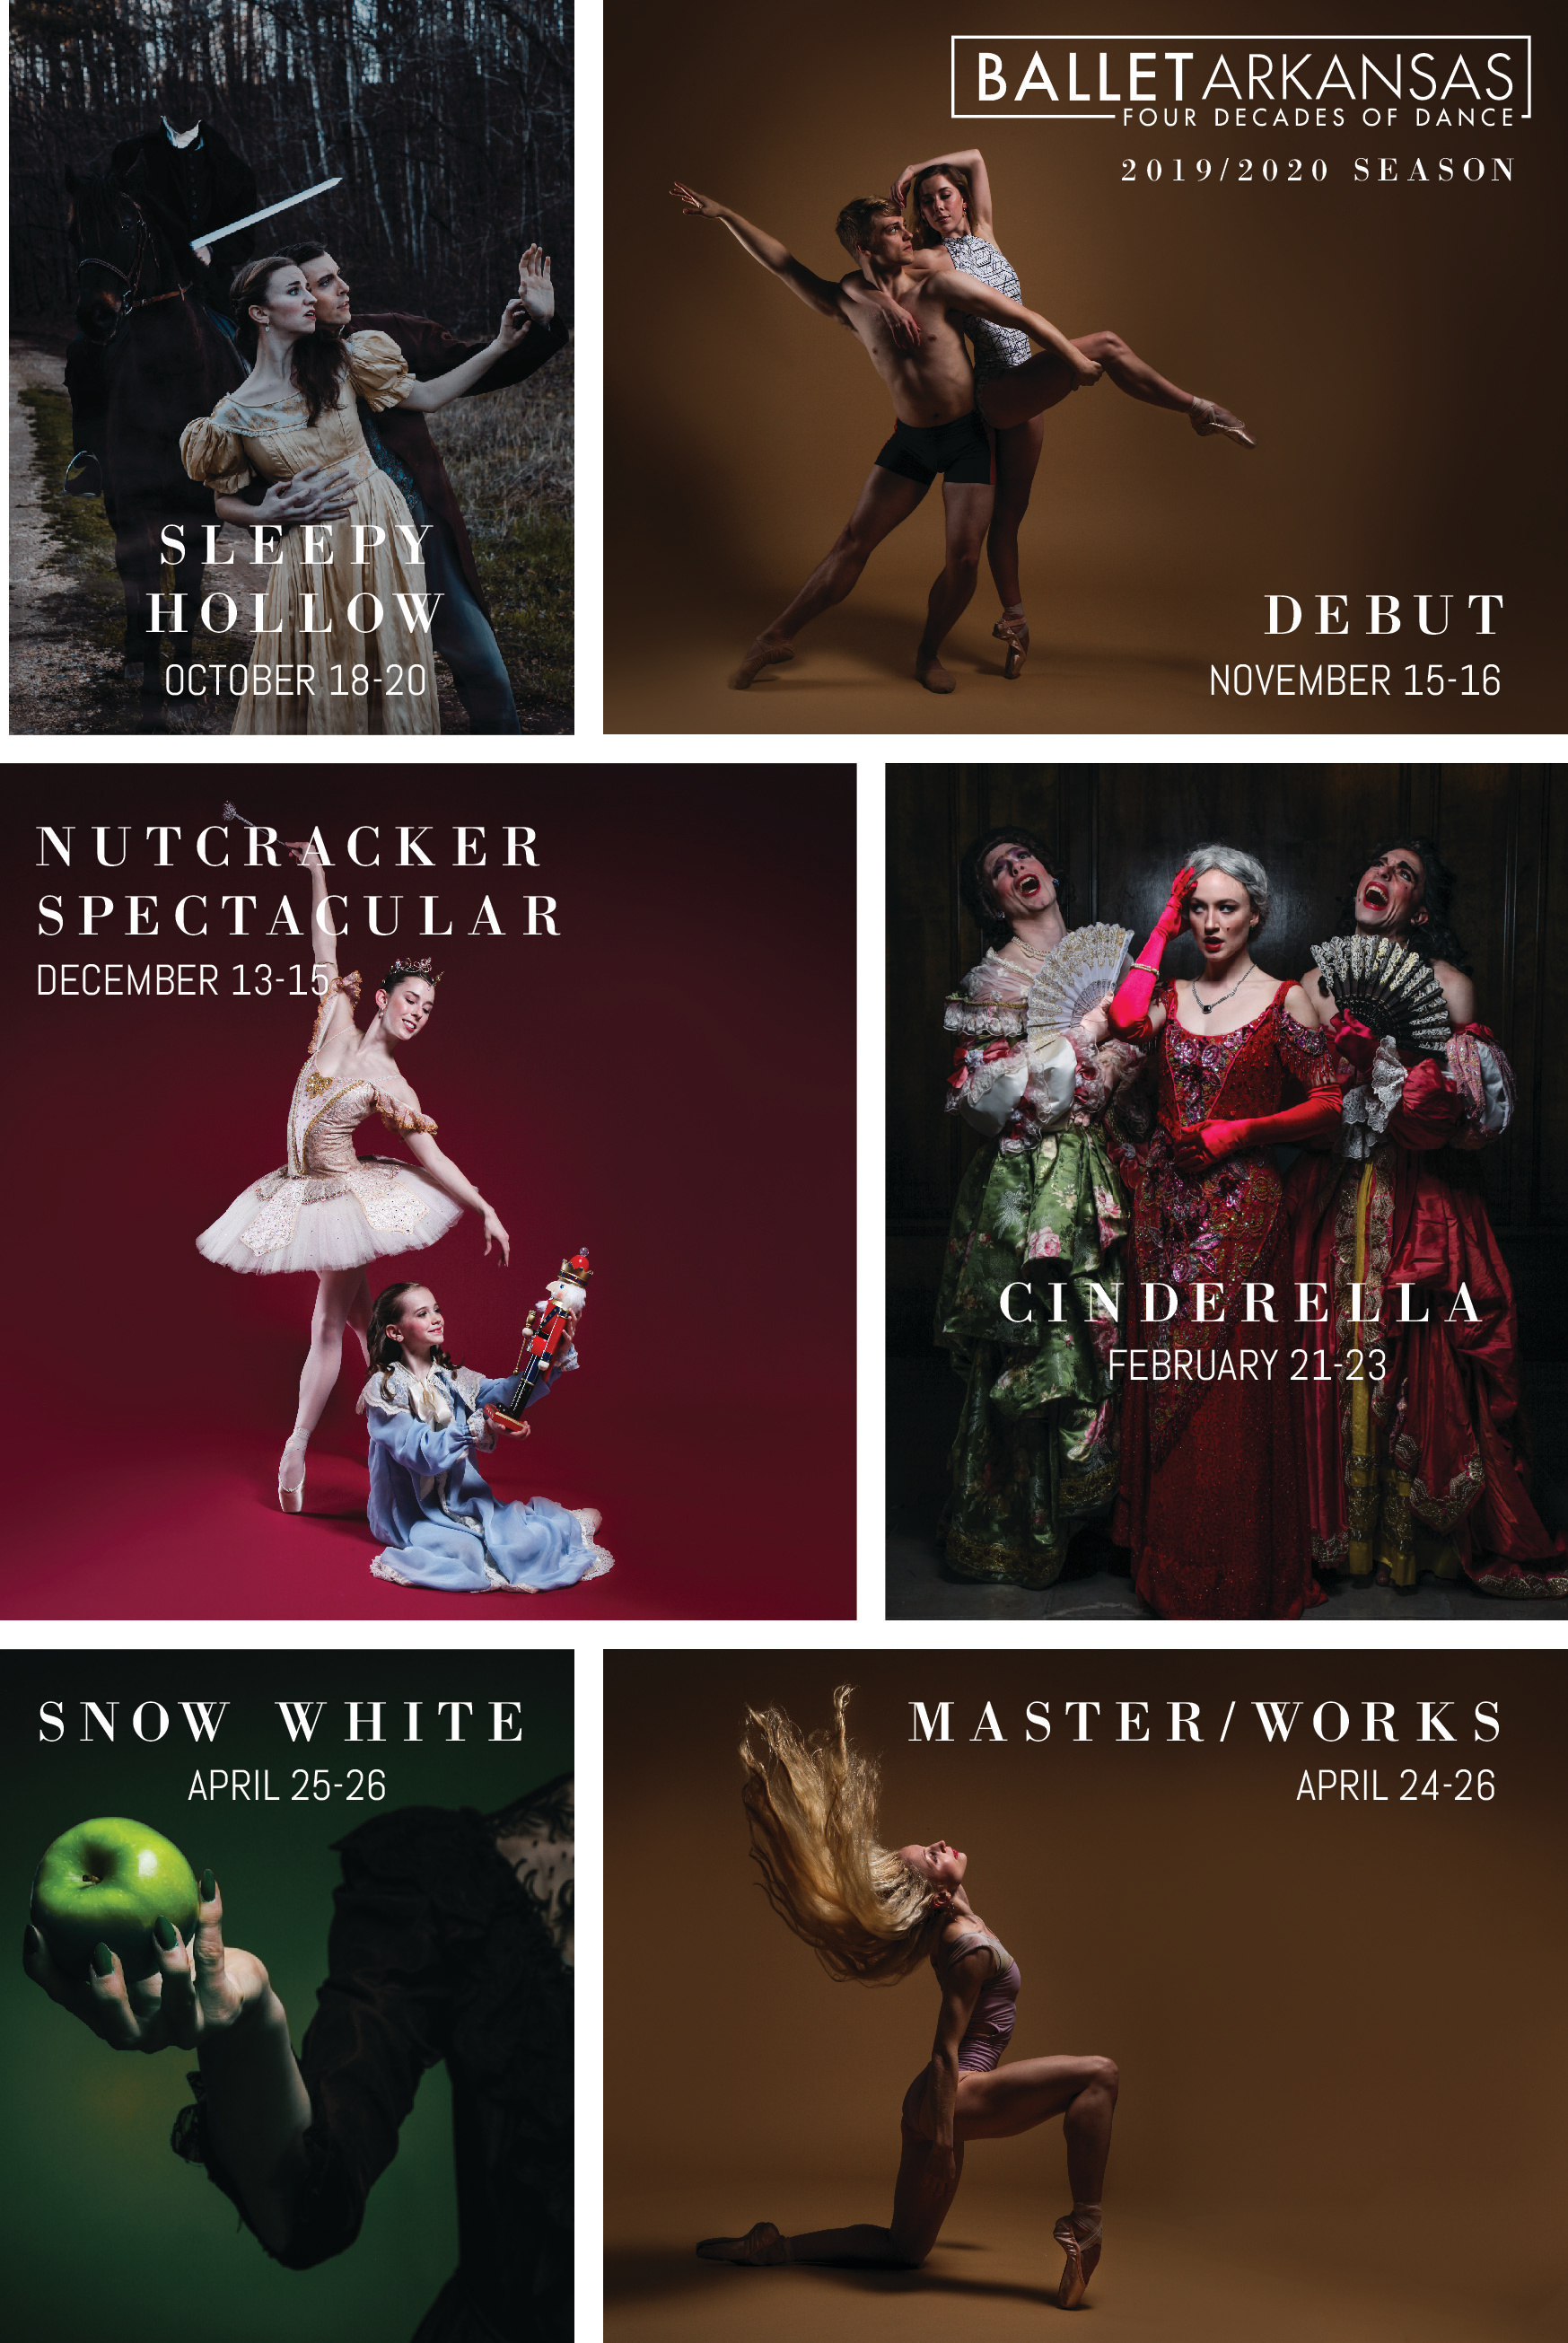 19/20 Season Poster - Offset Grid